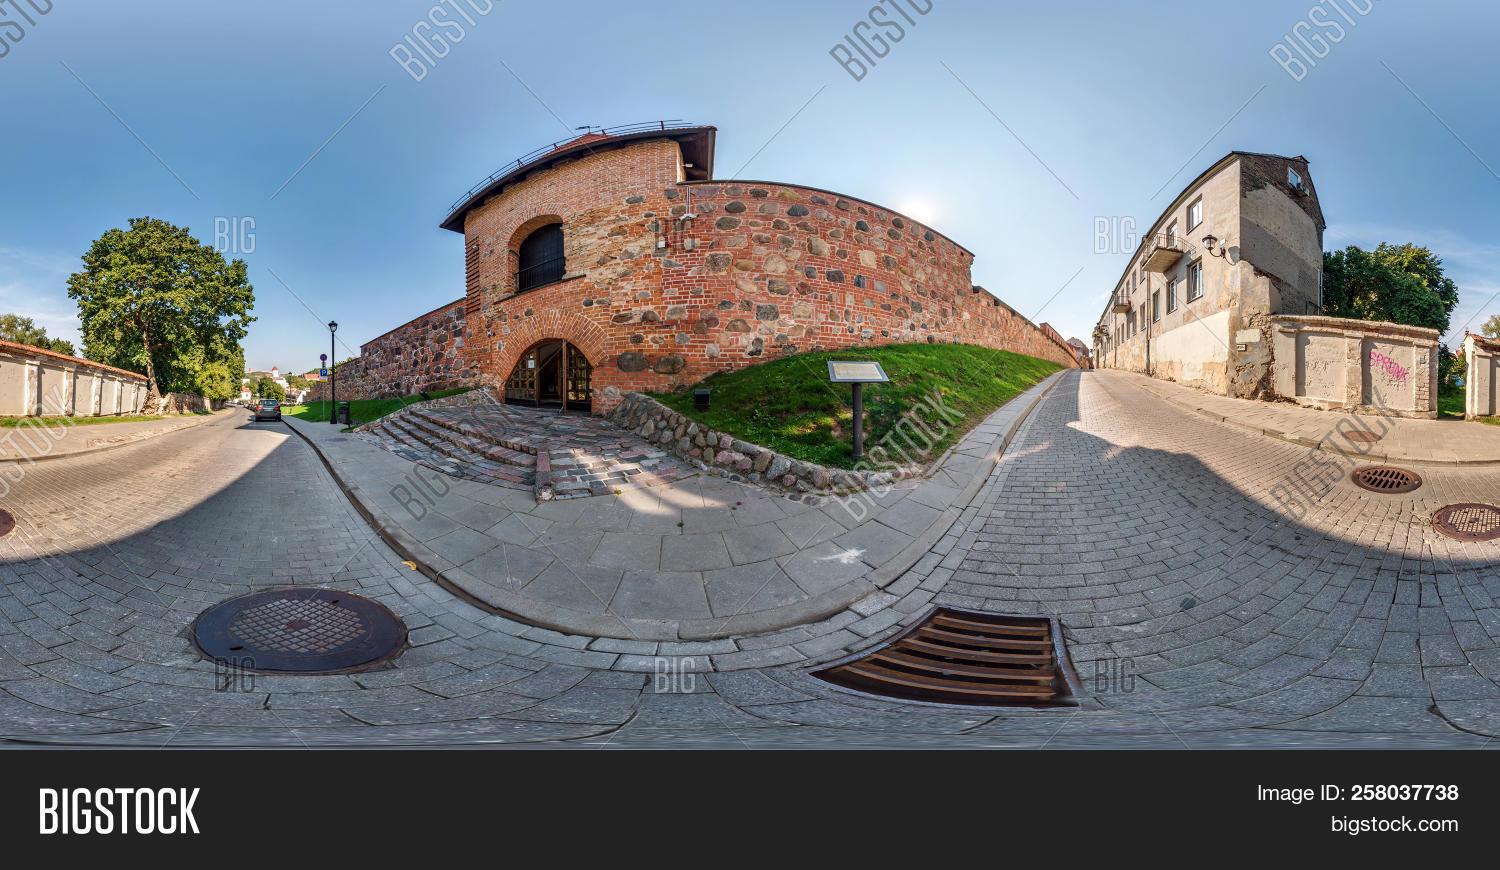 Vilnius, Lithuania - Image & Photo (Free Trial) | Bigstock